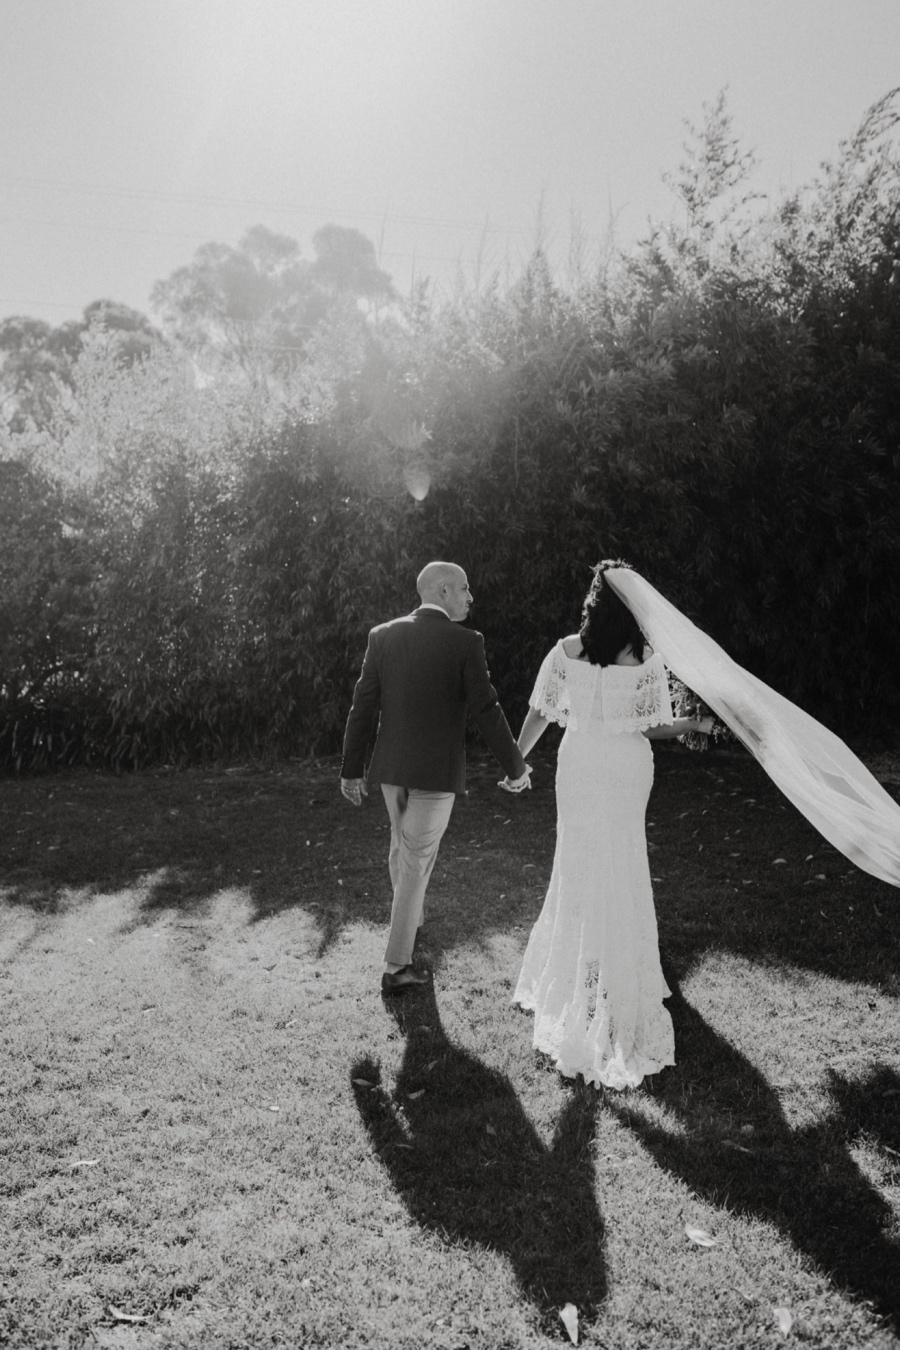 020_Melbourne Wedding Photographer Ashleigh Haase20.jpg